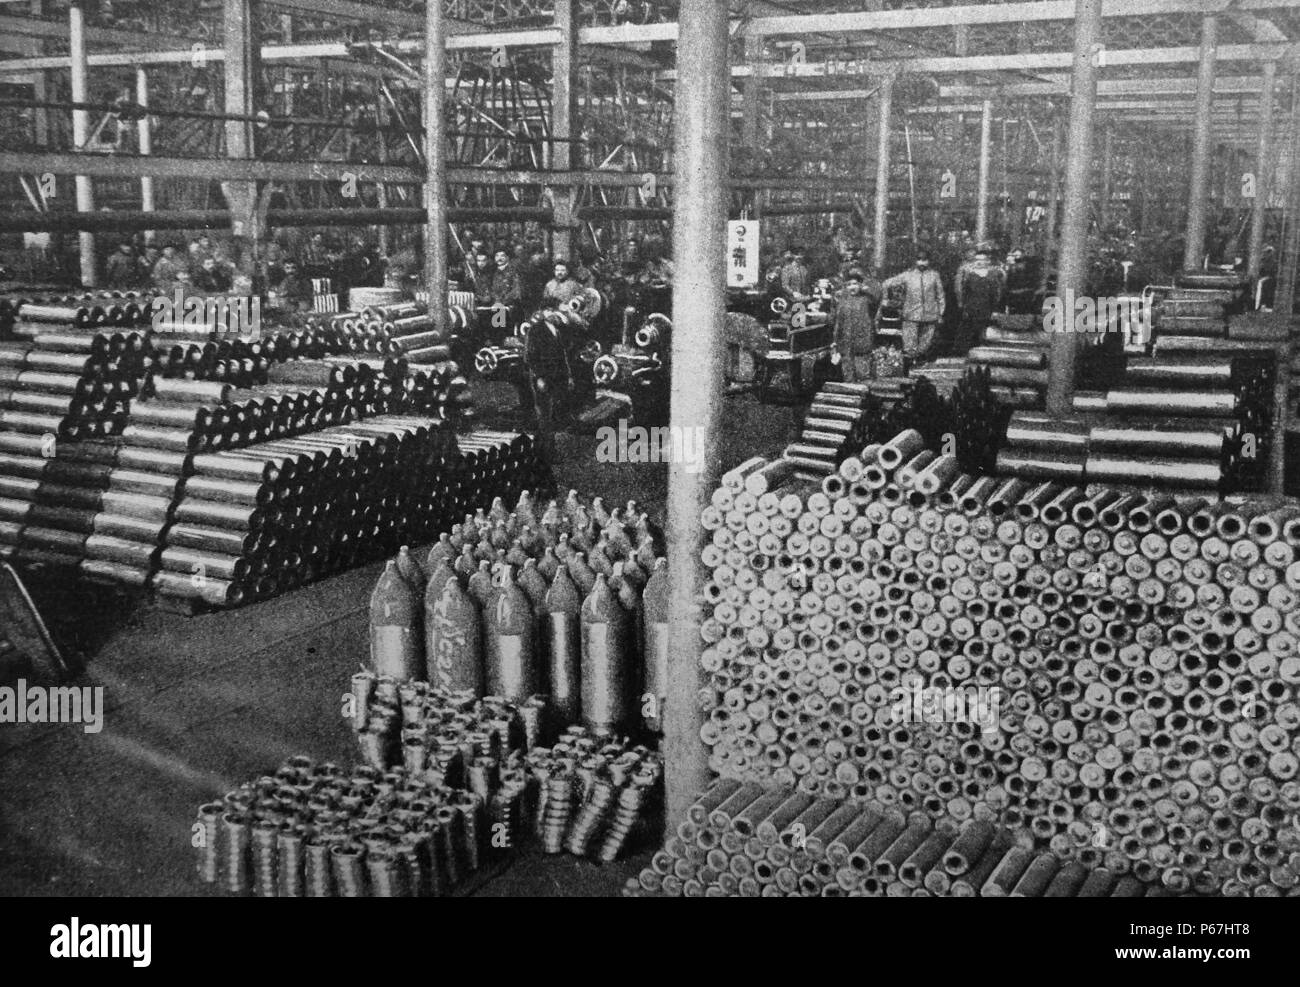 German armaments factory during World War One 1914 - Stock Image